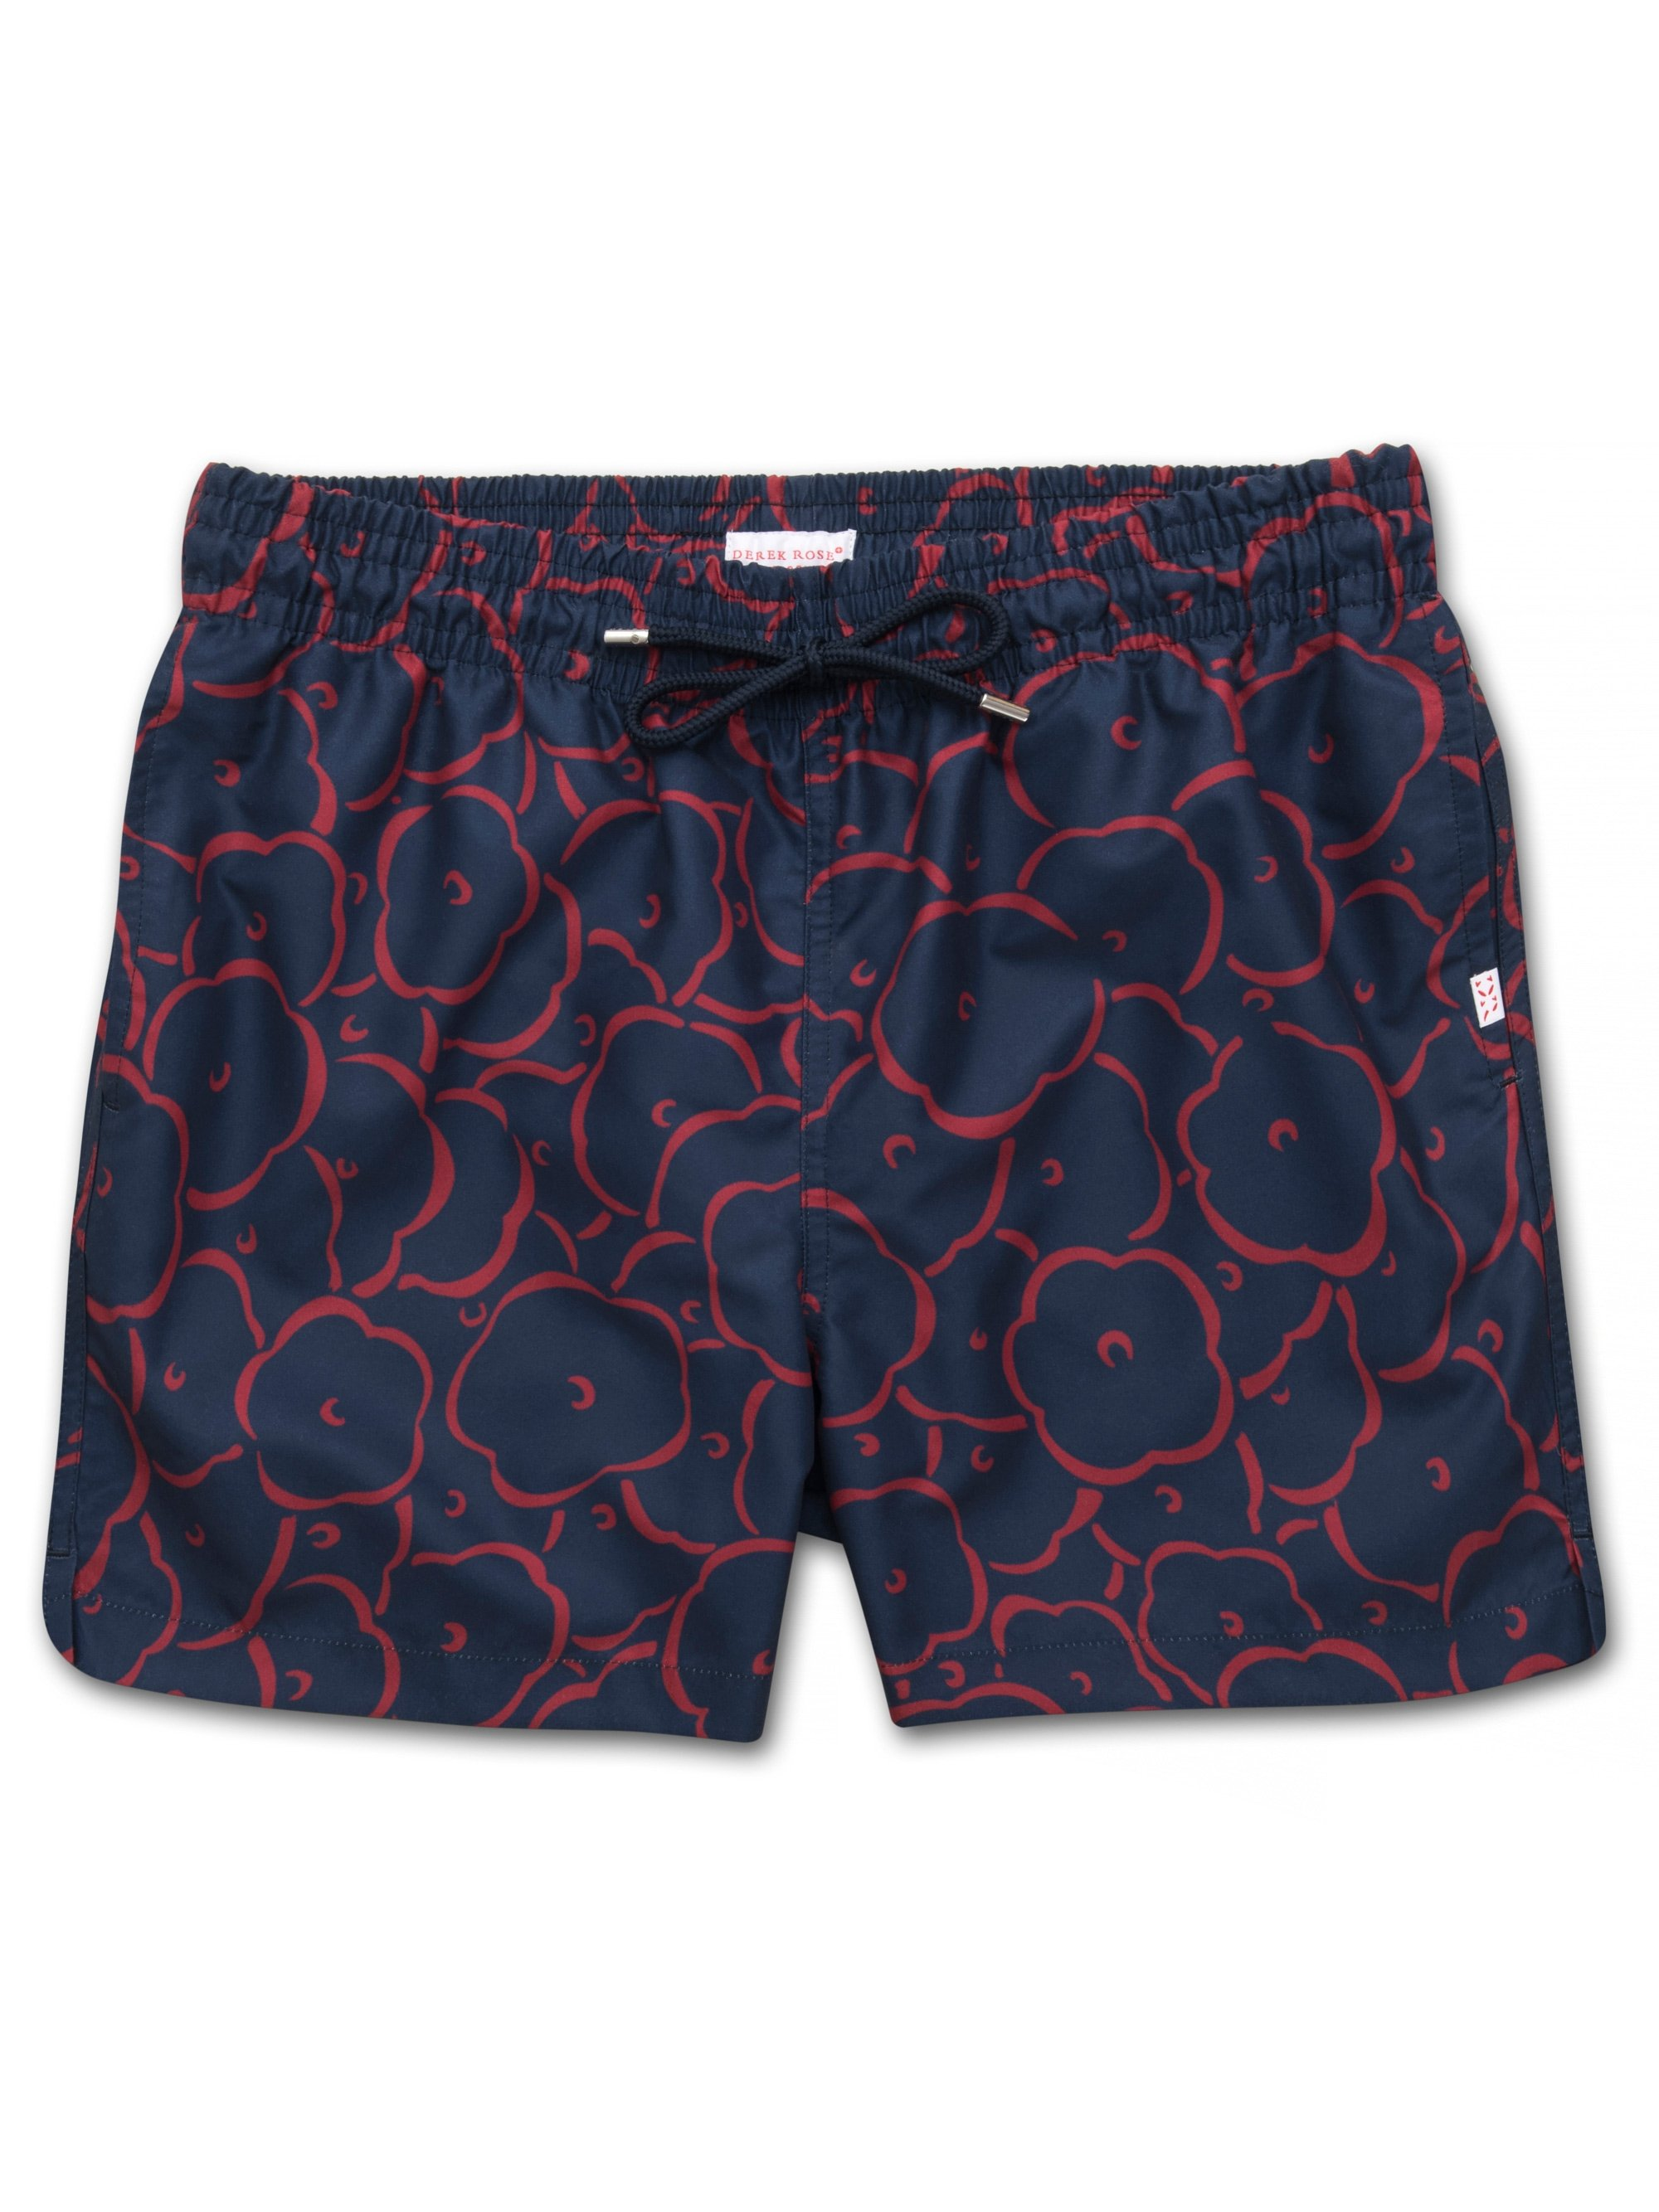 Men's Short Classic Fit Swim Shorts Maui 25 Navy